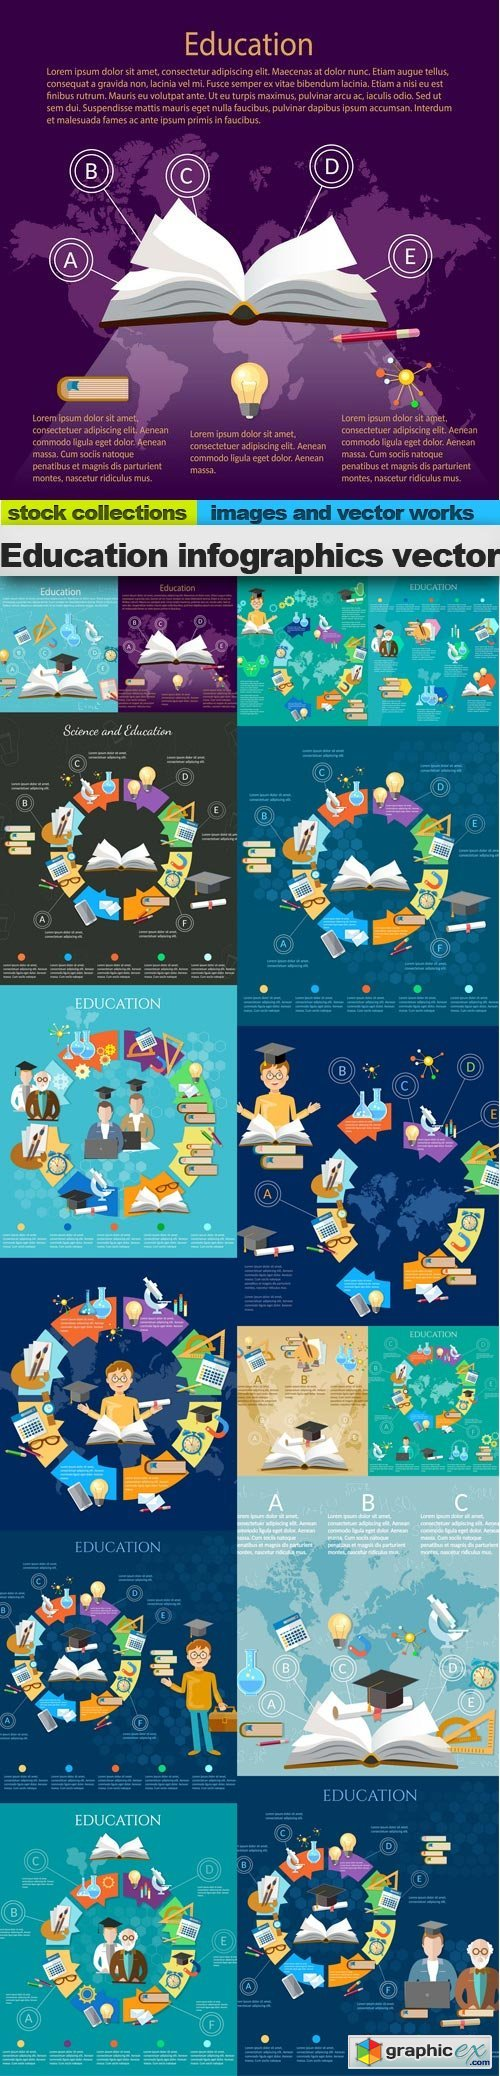 Education infographics vector, 15 x EPS